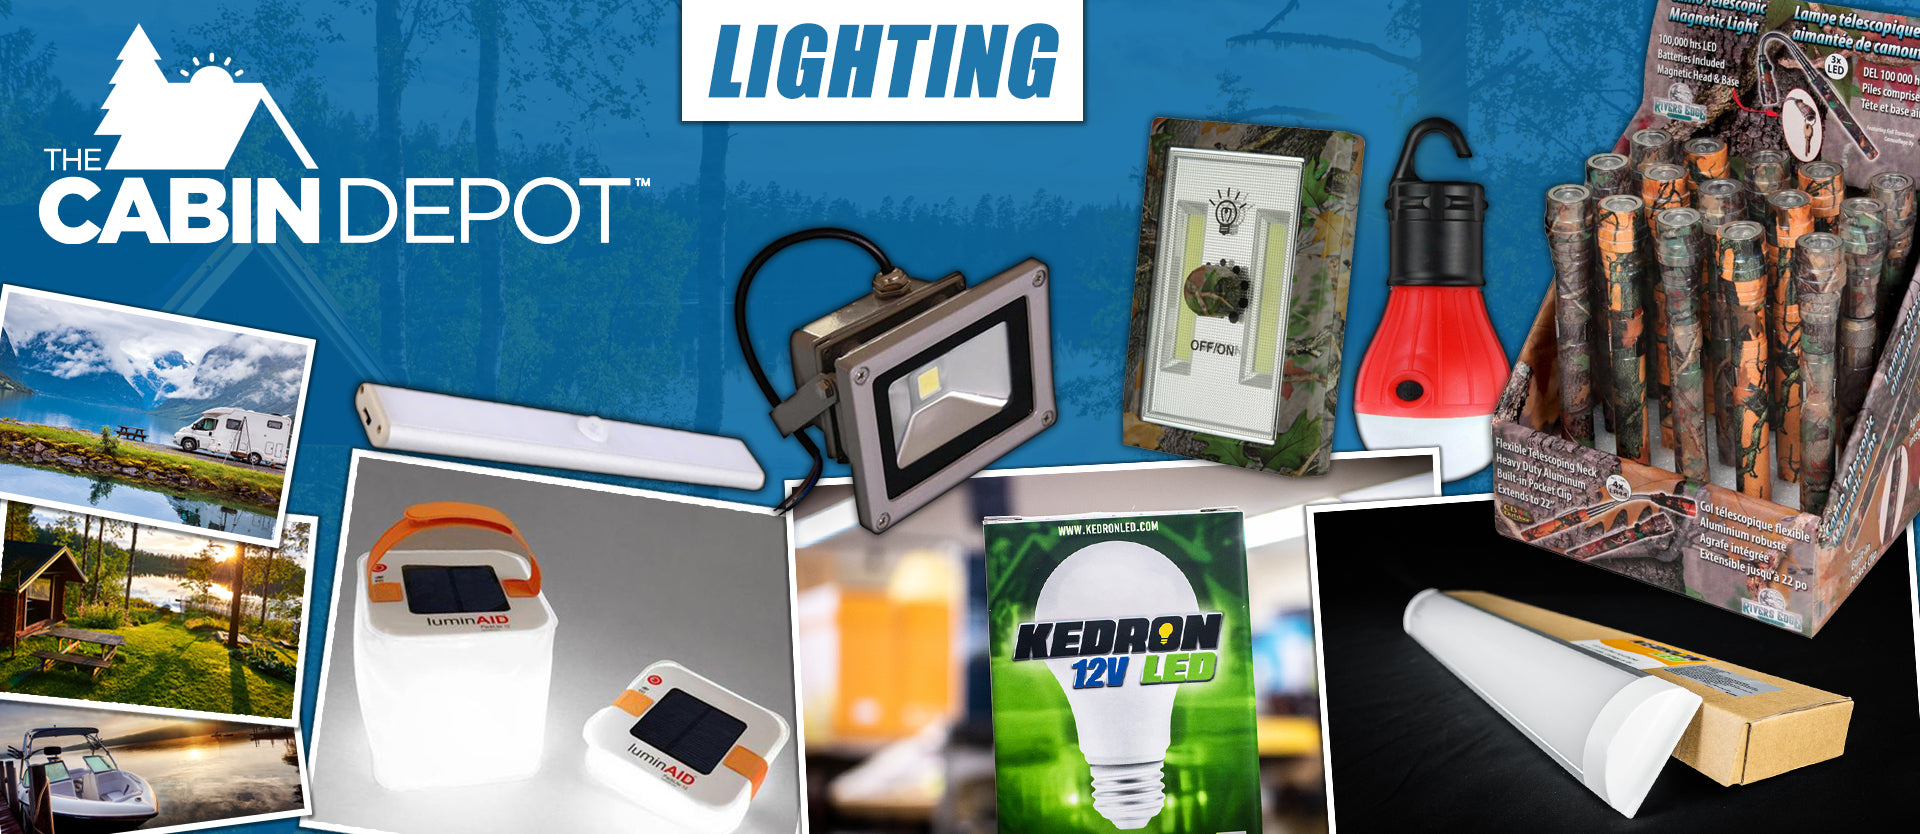 Lighting Off Grid The Cabin Depot ™ Canada